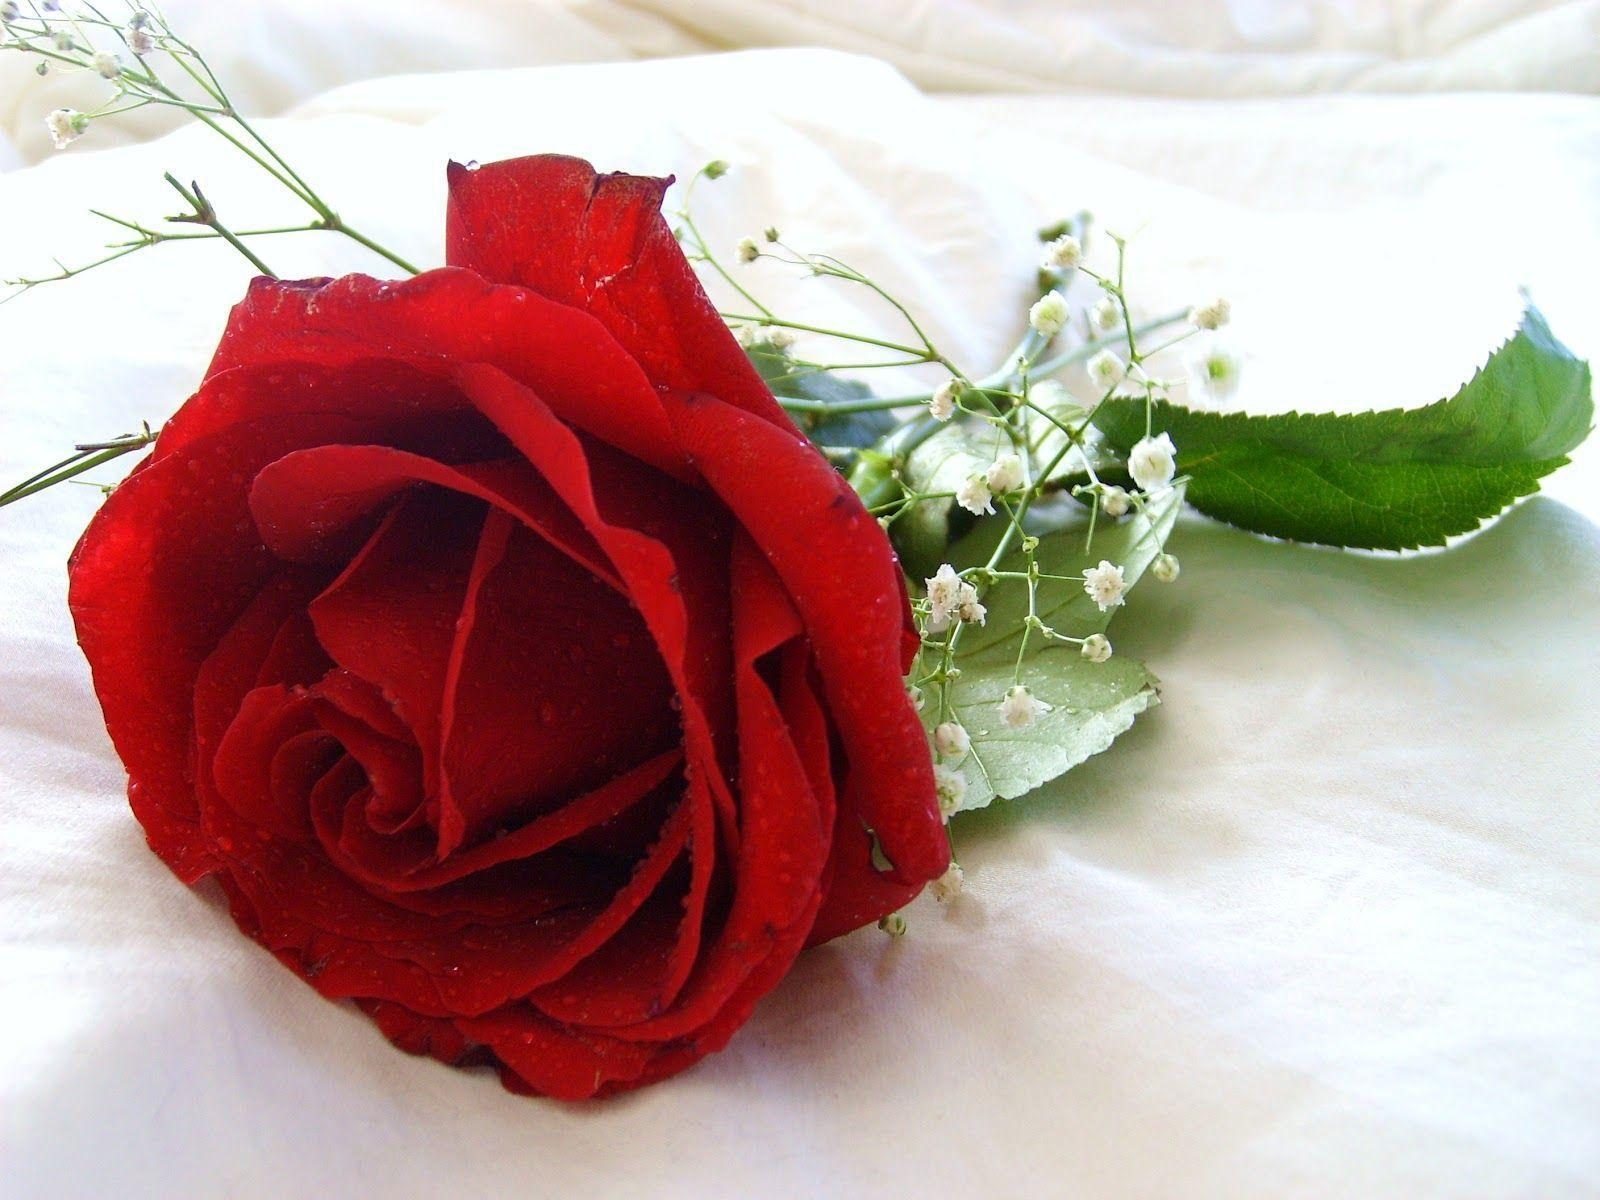 Red rose flowers wallpapers wallpaper cave red rose flower wallpaper beautiful flowers 2380 full hd wallpaper izmirmasajfo